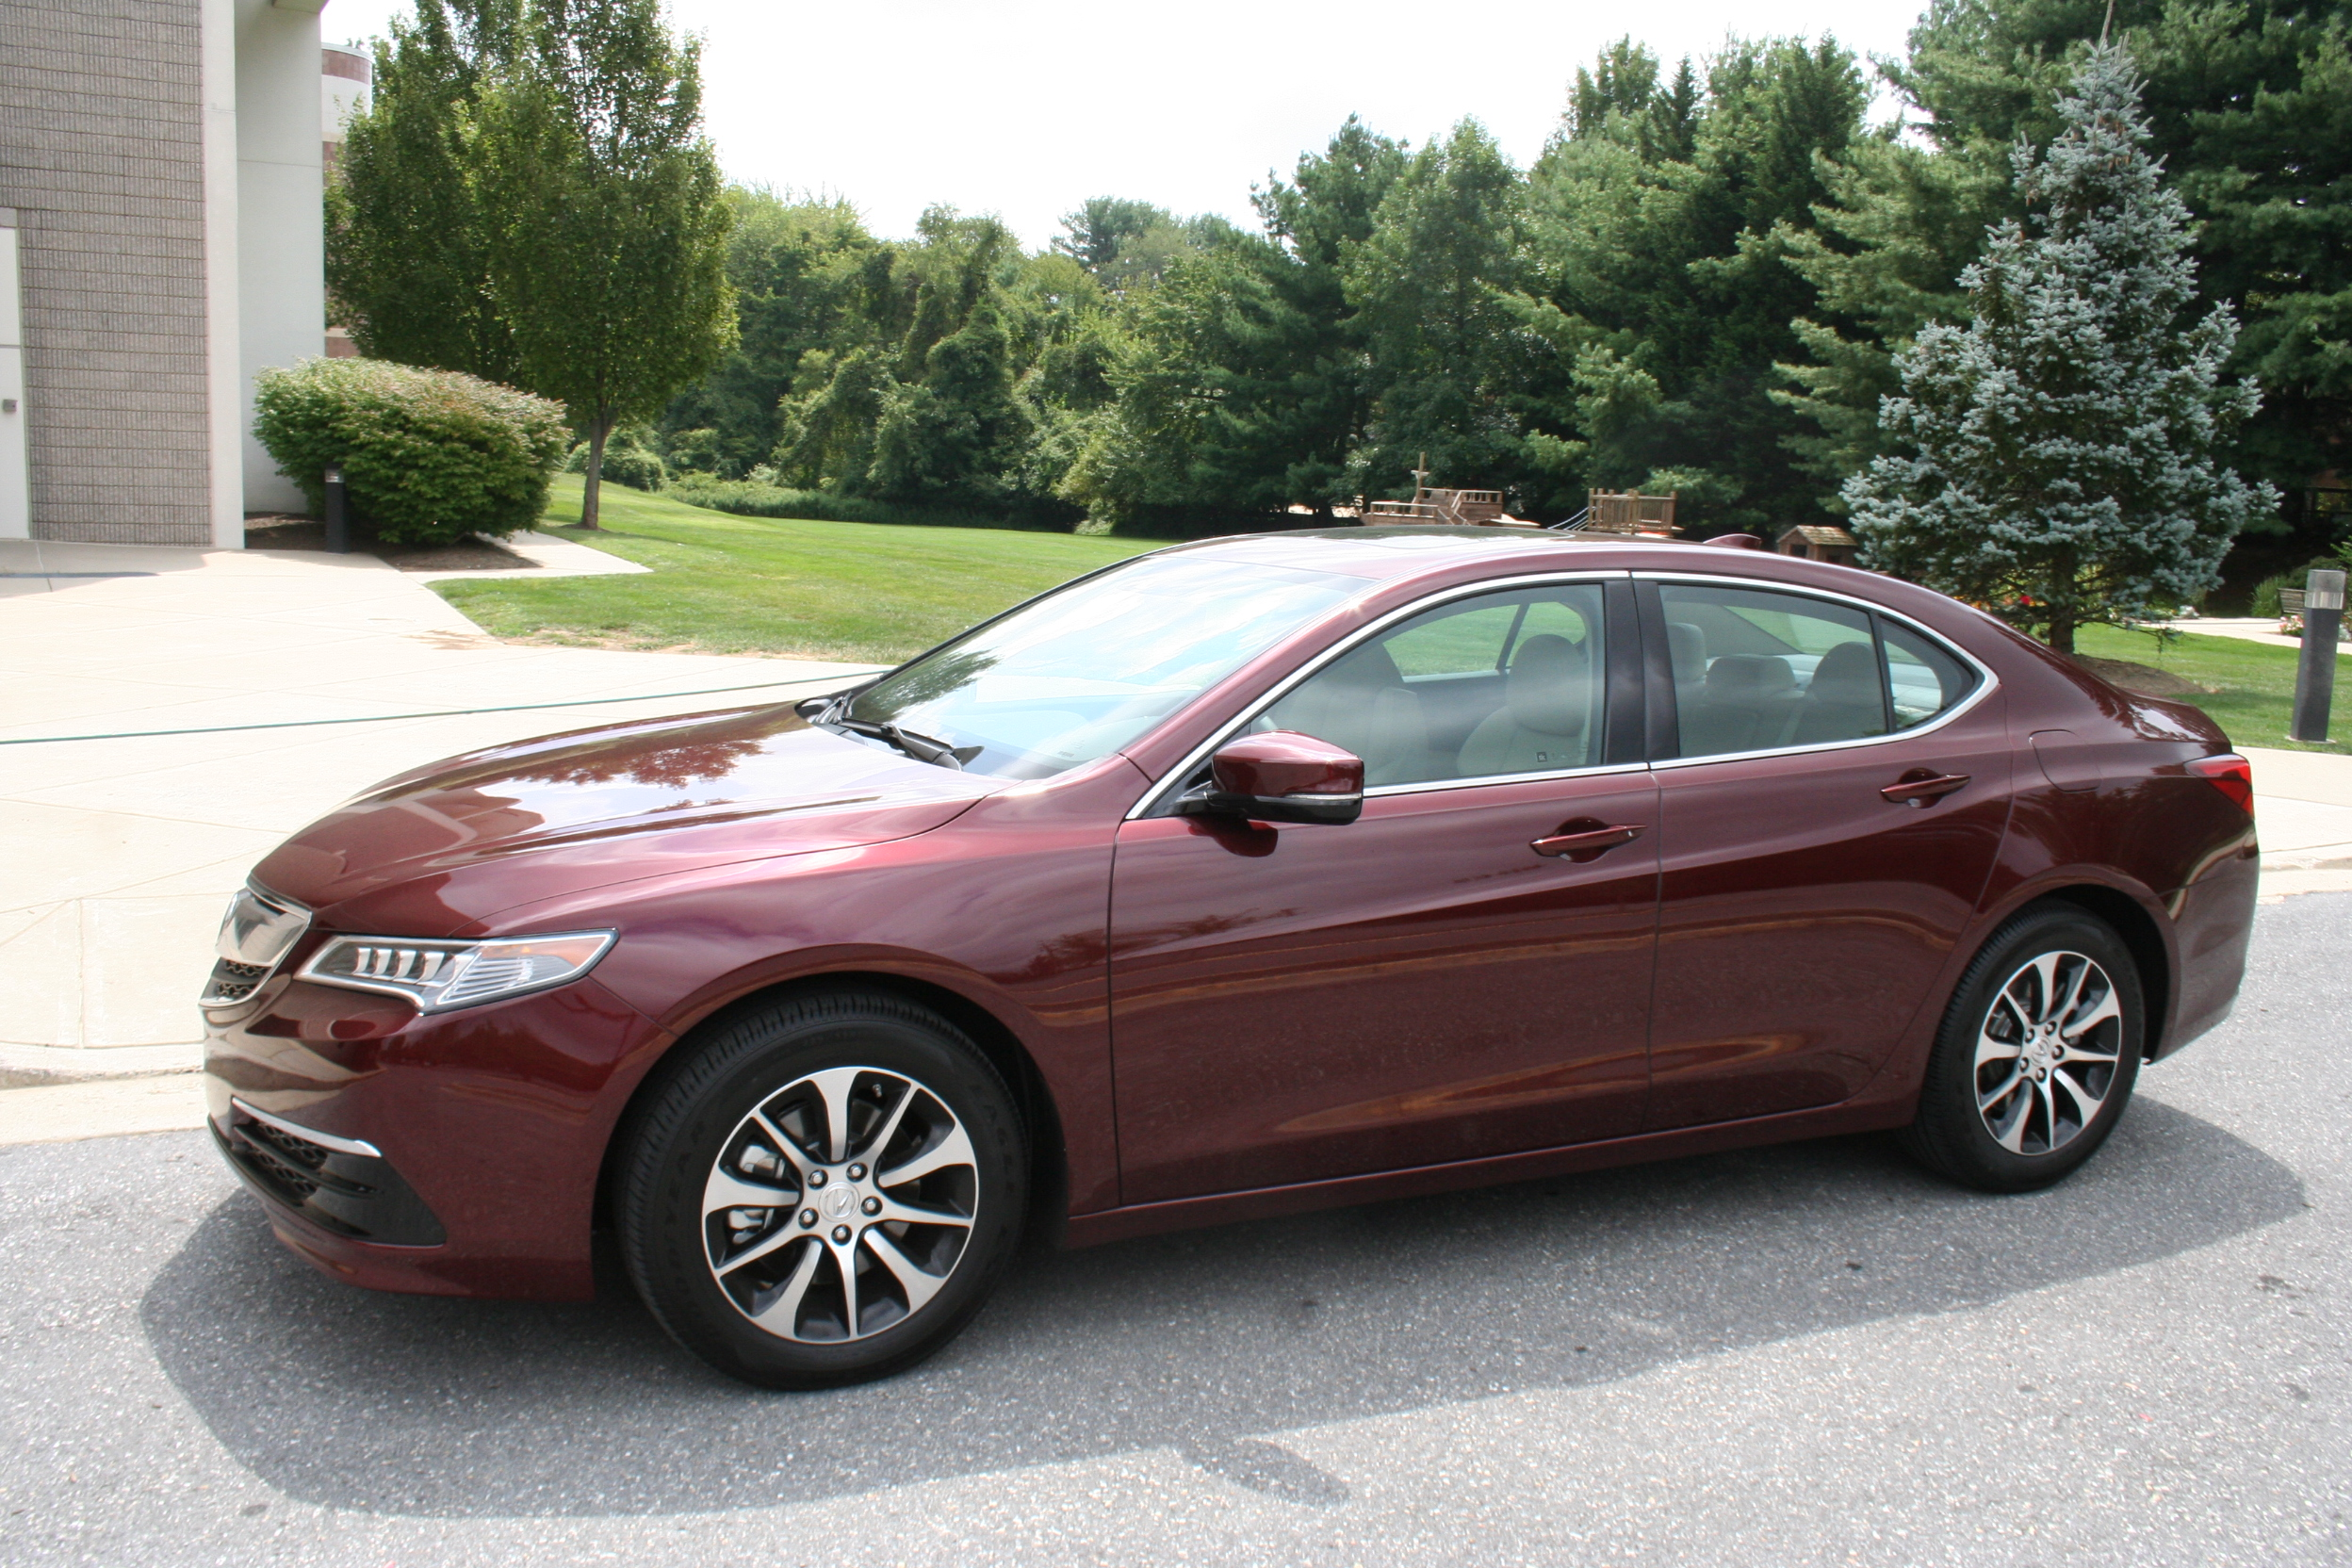 Car report: 2015 Acura TLX replaces two Acura sedans in a neat and tidy package